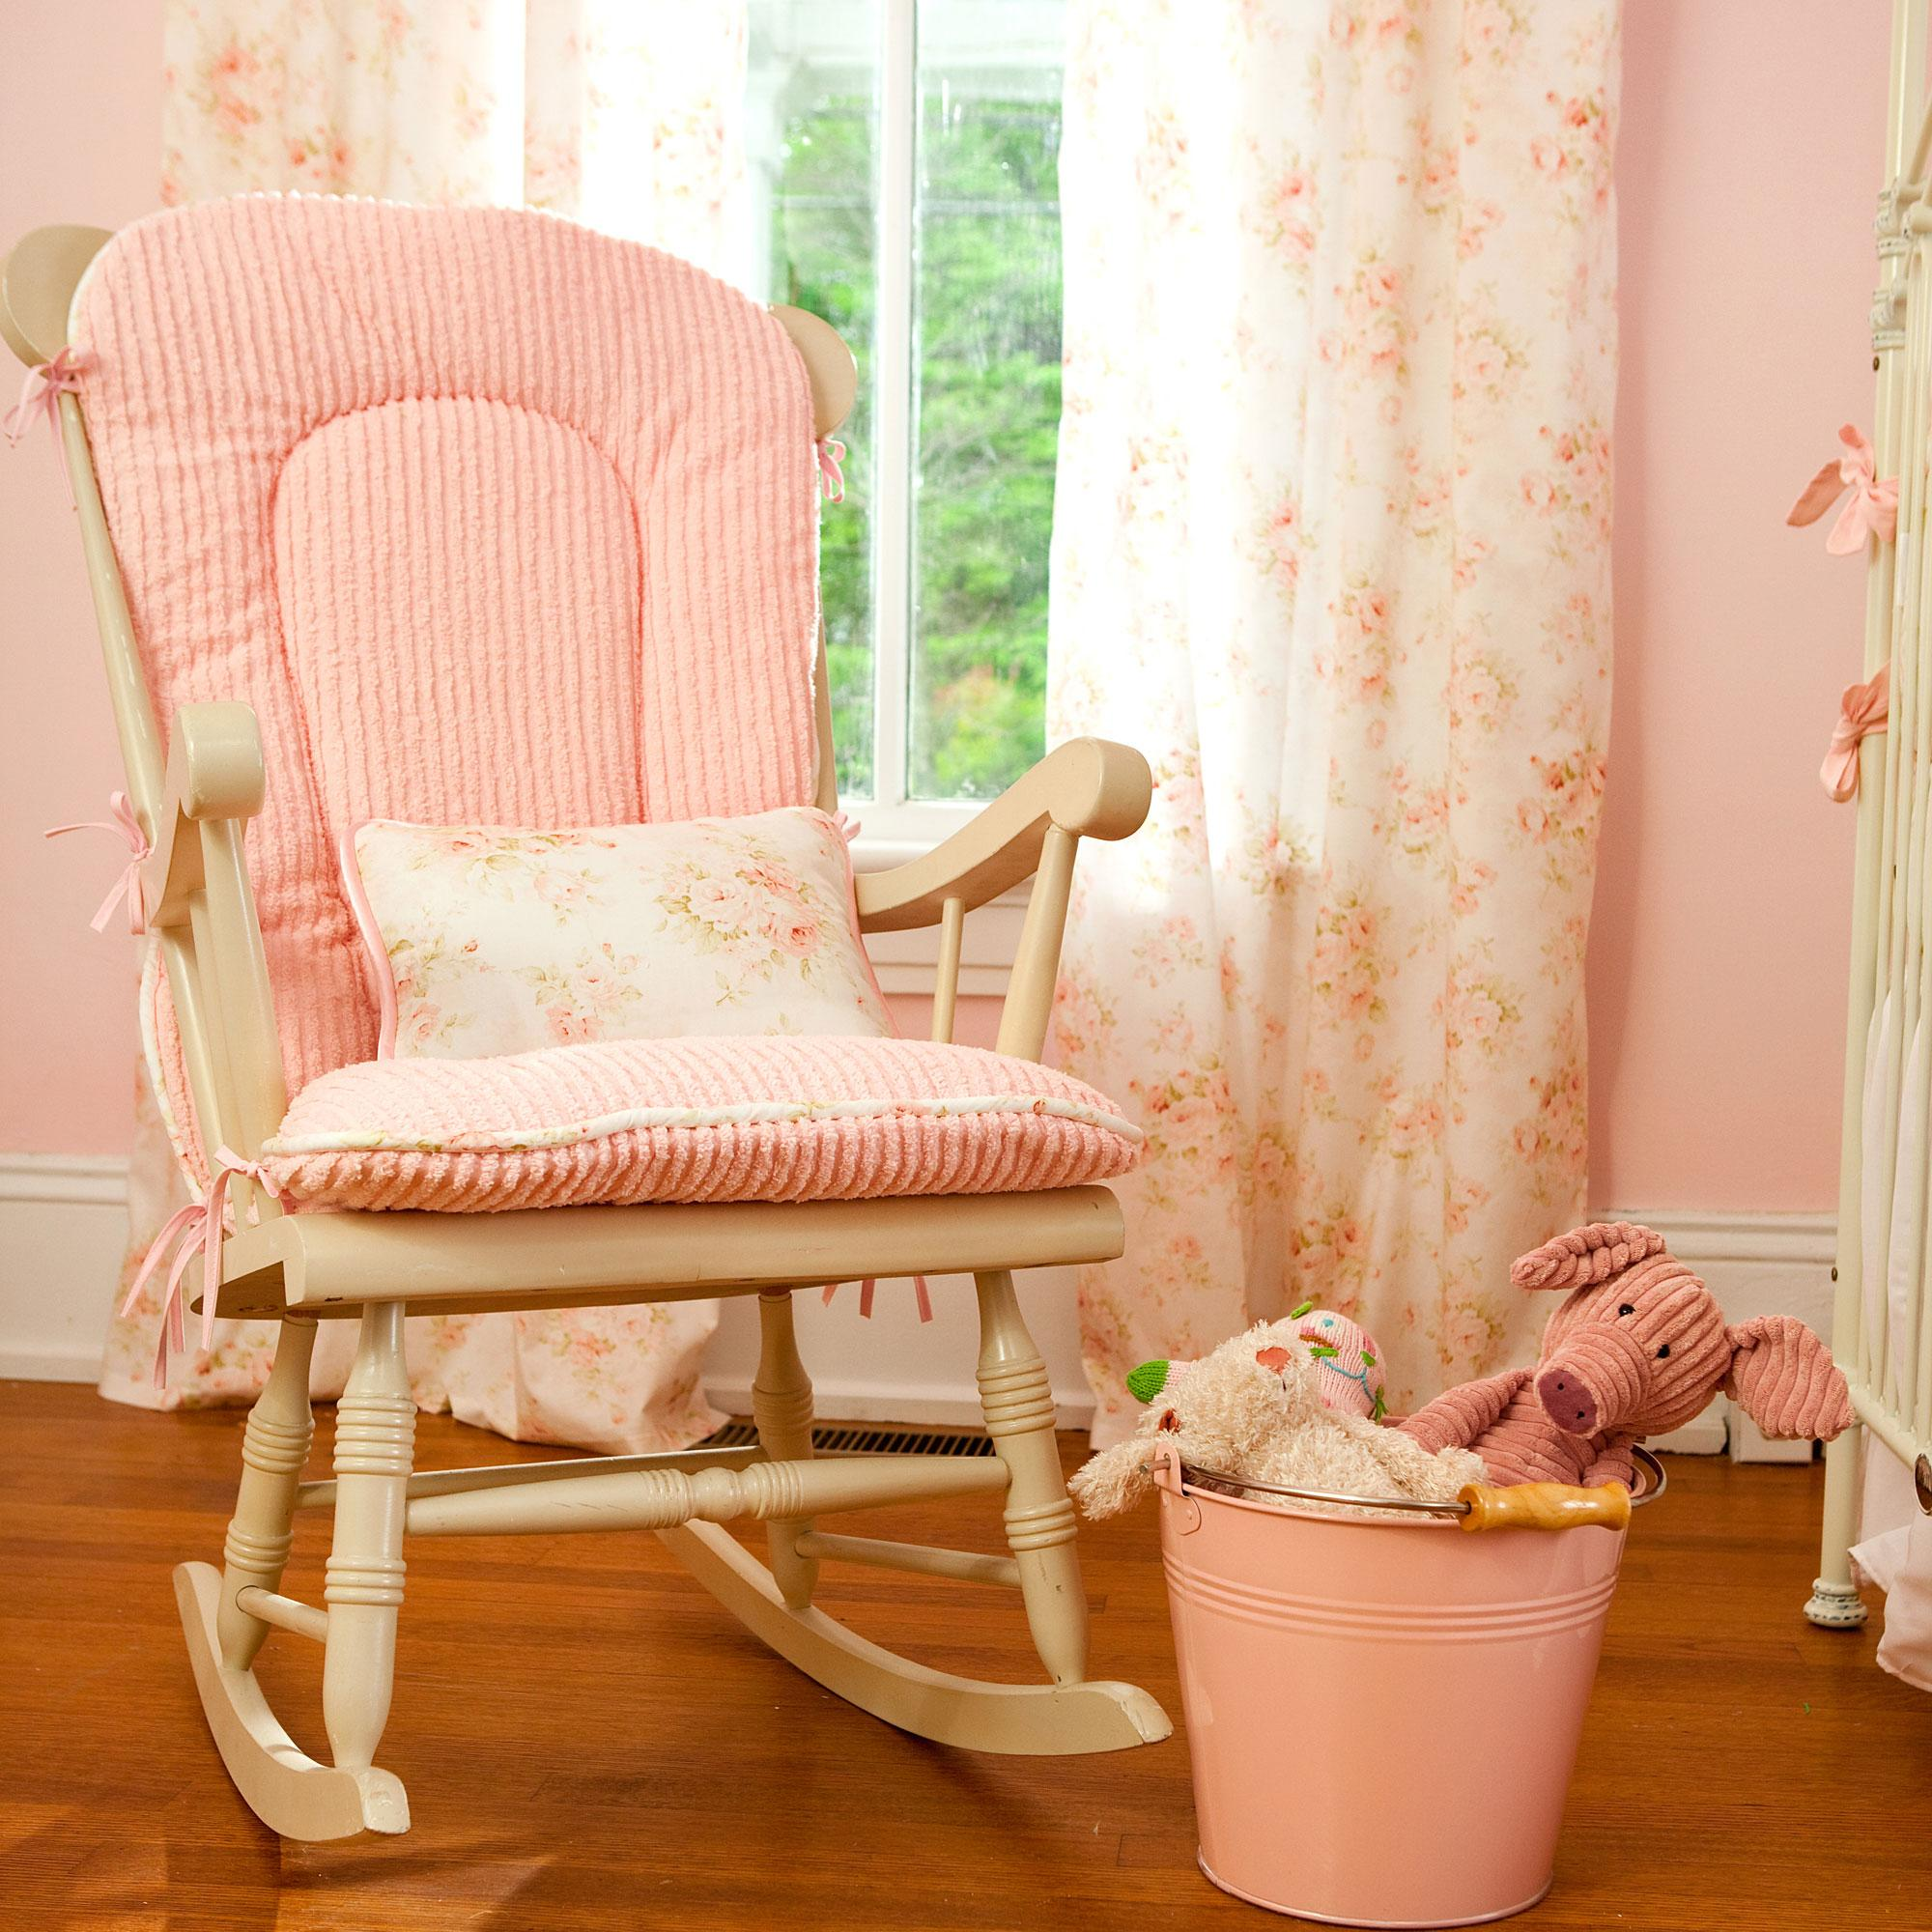 Rocking Chair Cushion | Cushions for Rocking Chairs at Walmart | Rocking Chair Glider Cushions